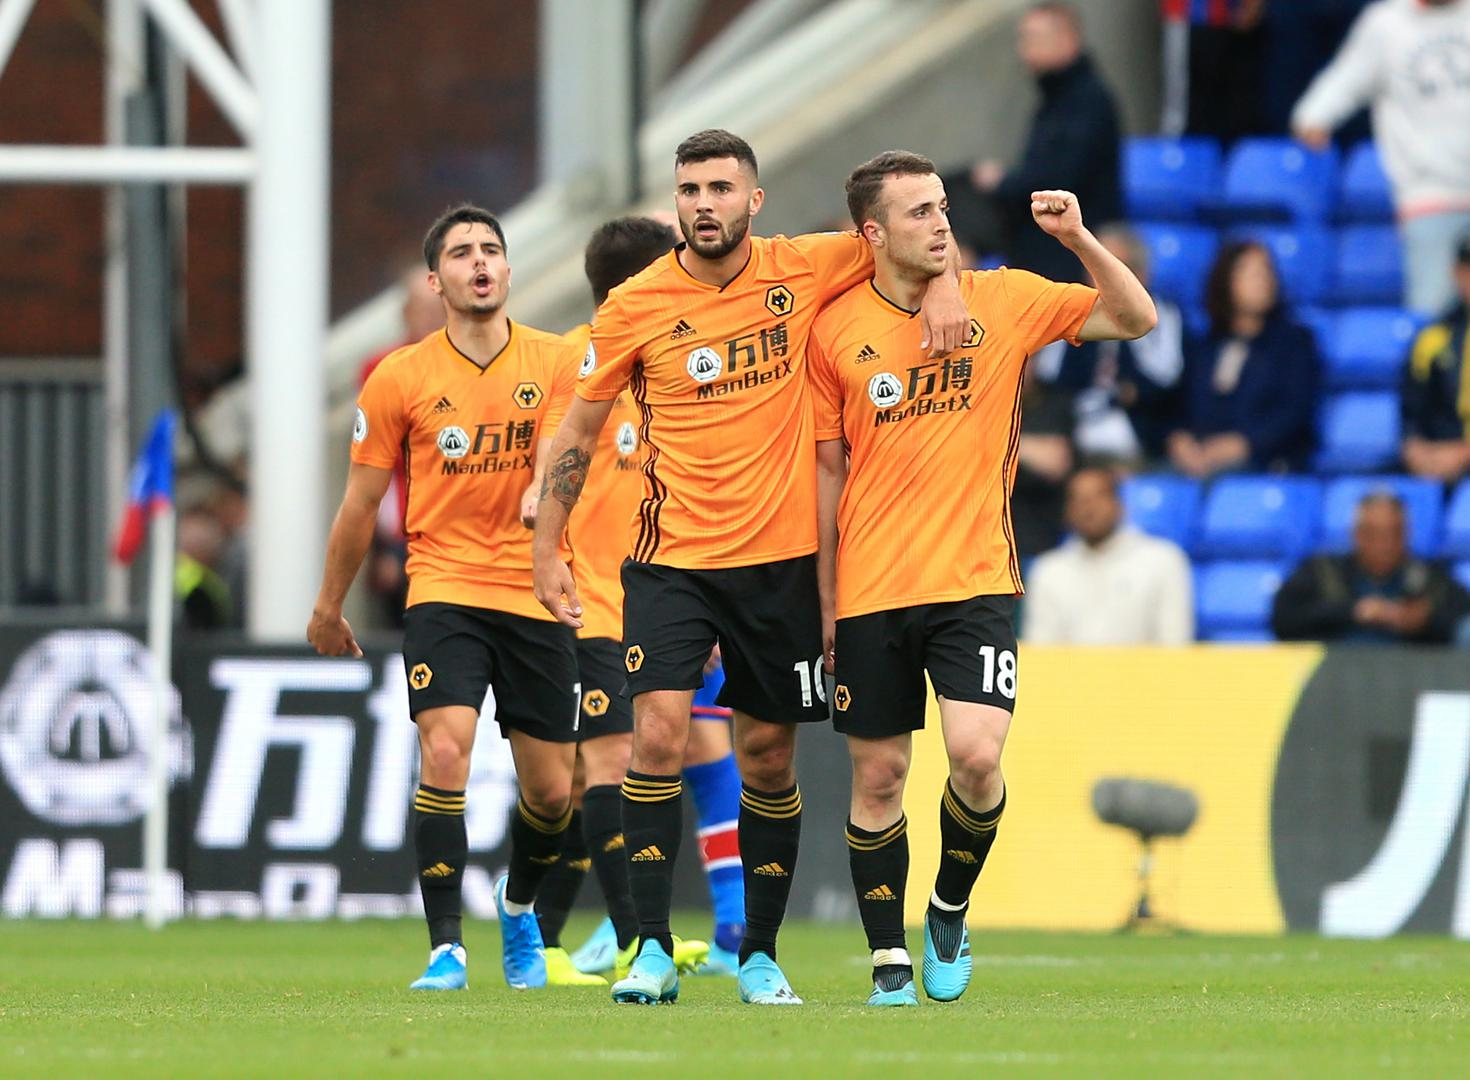 Patrick Cutrone and Diogo Jota celebrate scoring a goal for Wolverhampton Wanderers.